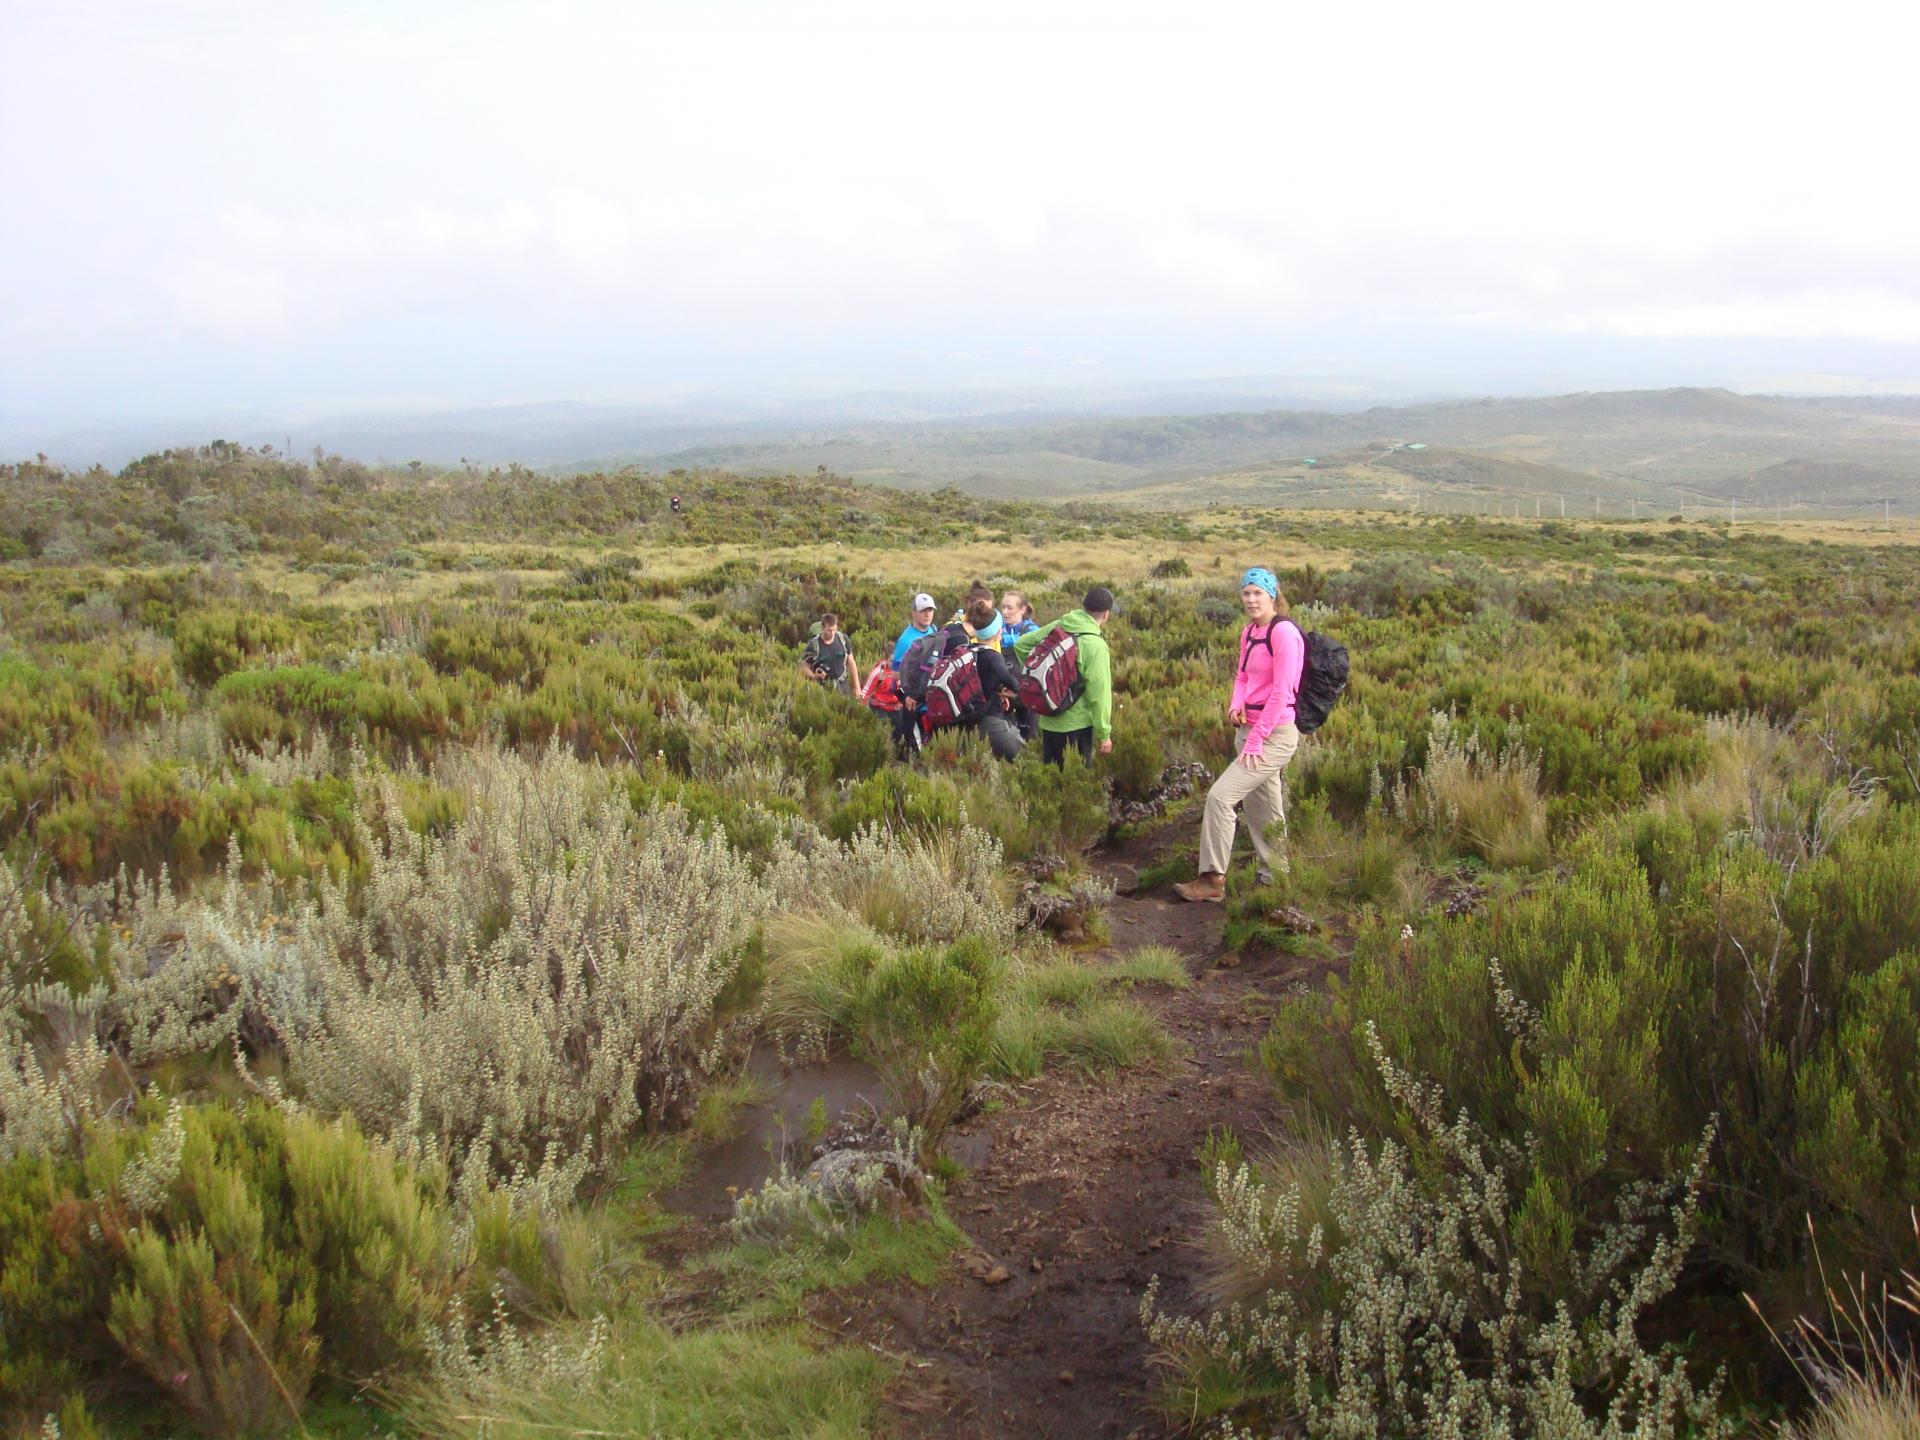 Mount Kenya Adventure Climbing Route